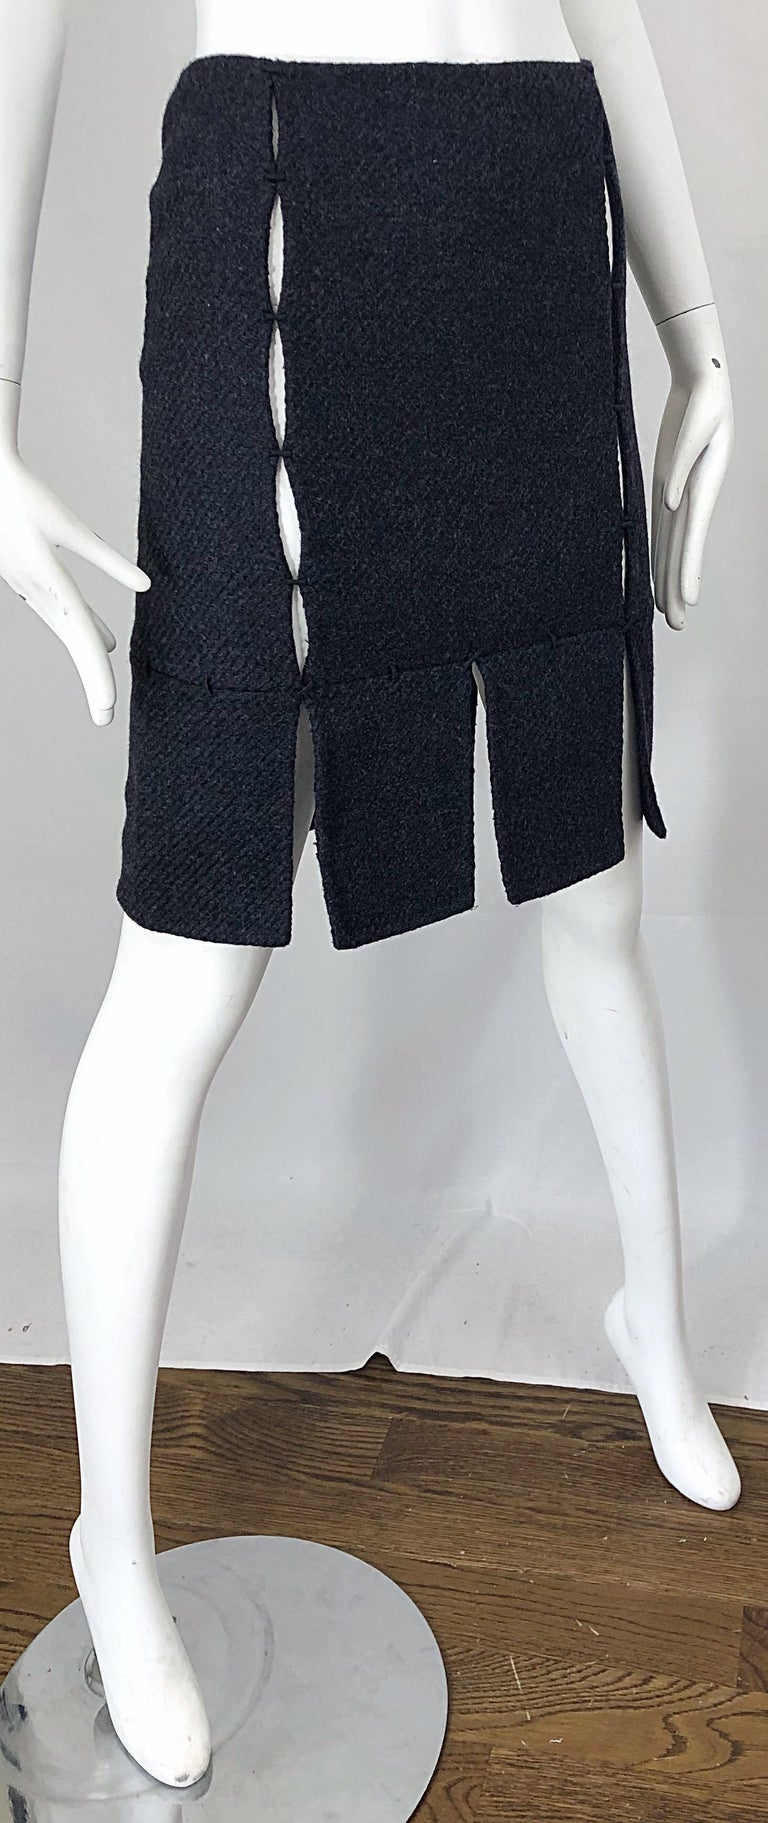 1990s Prada Charcoal Grey Cut - Out High Waisted Wool Vintage 90s Pencil Skirt For Sale 6